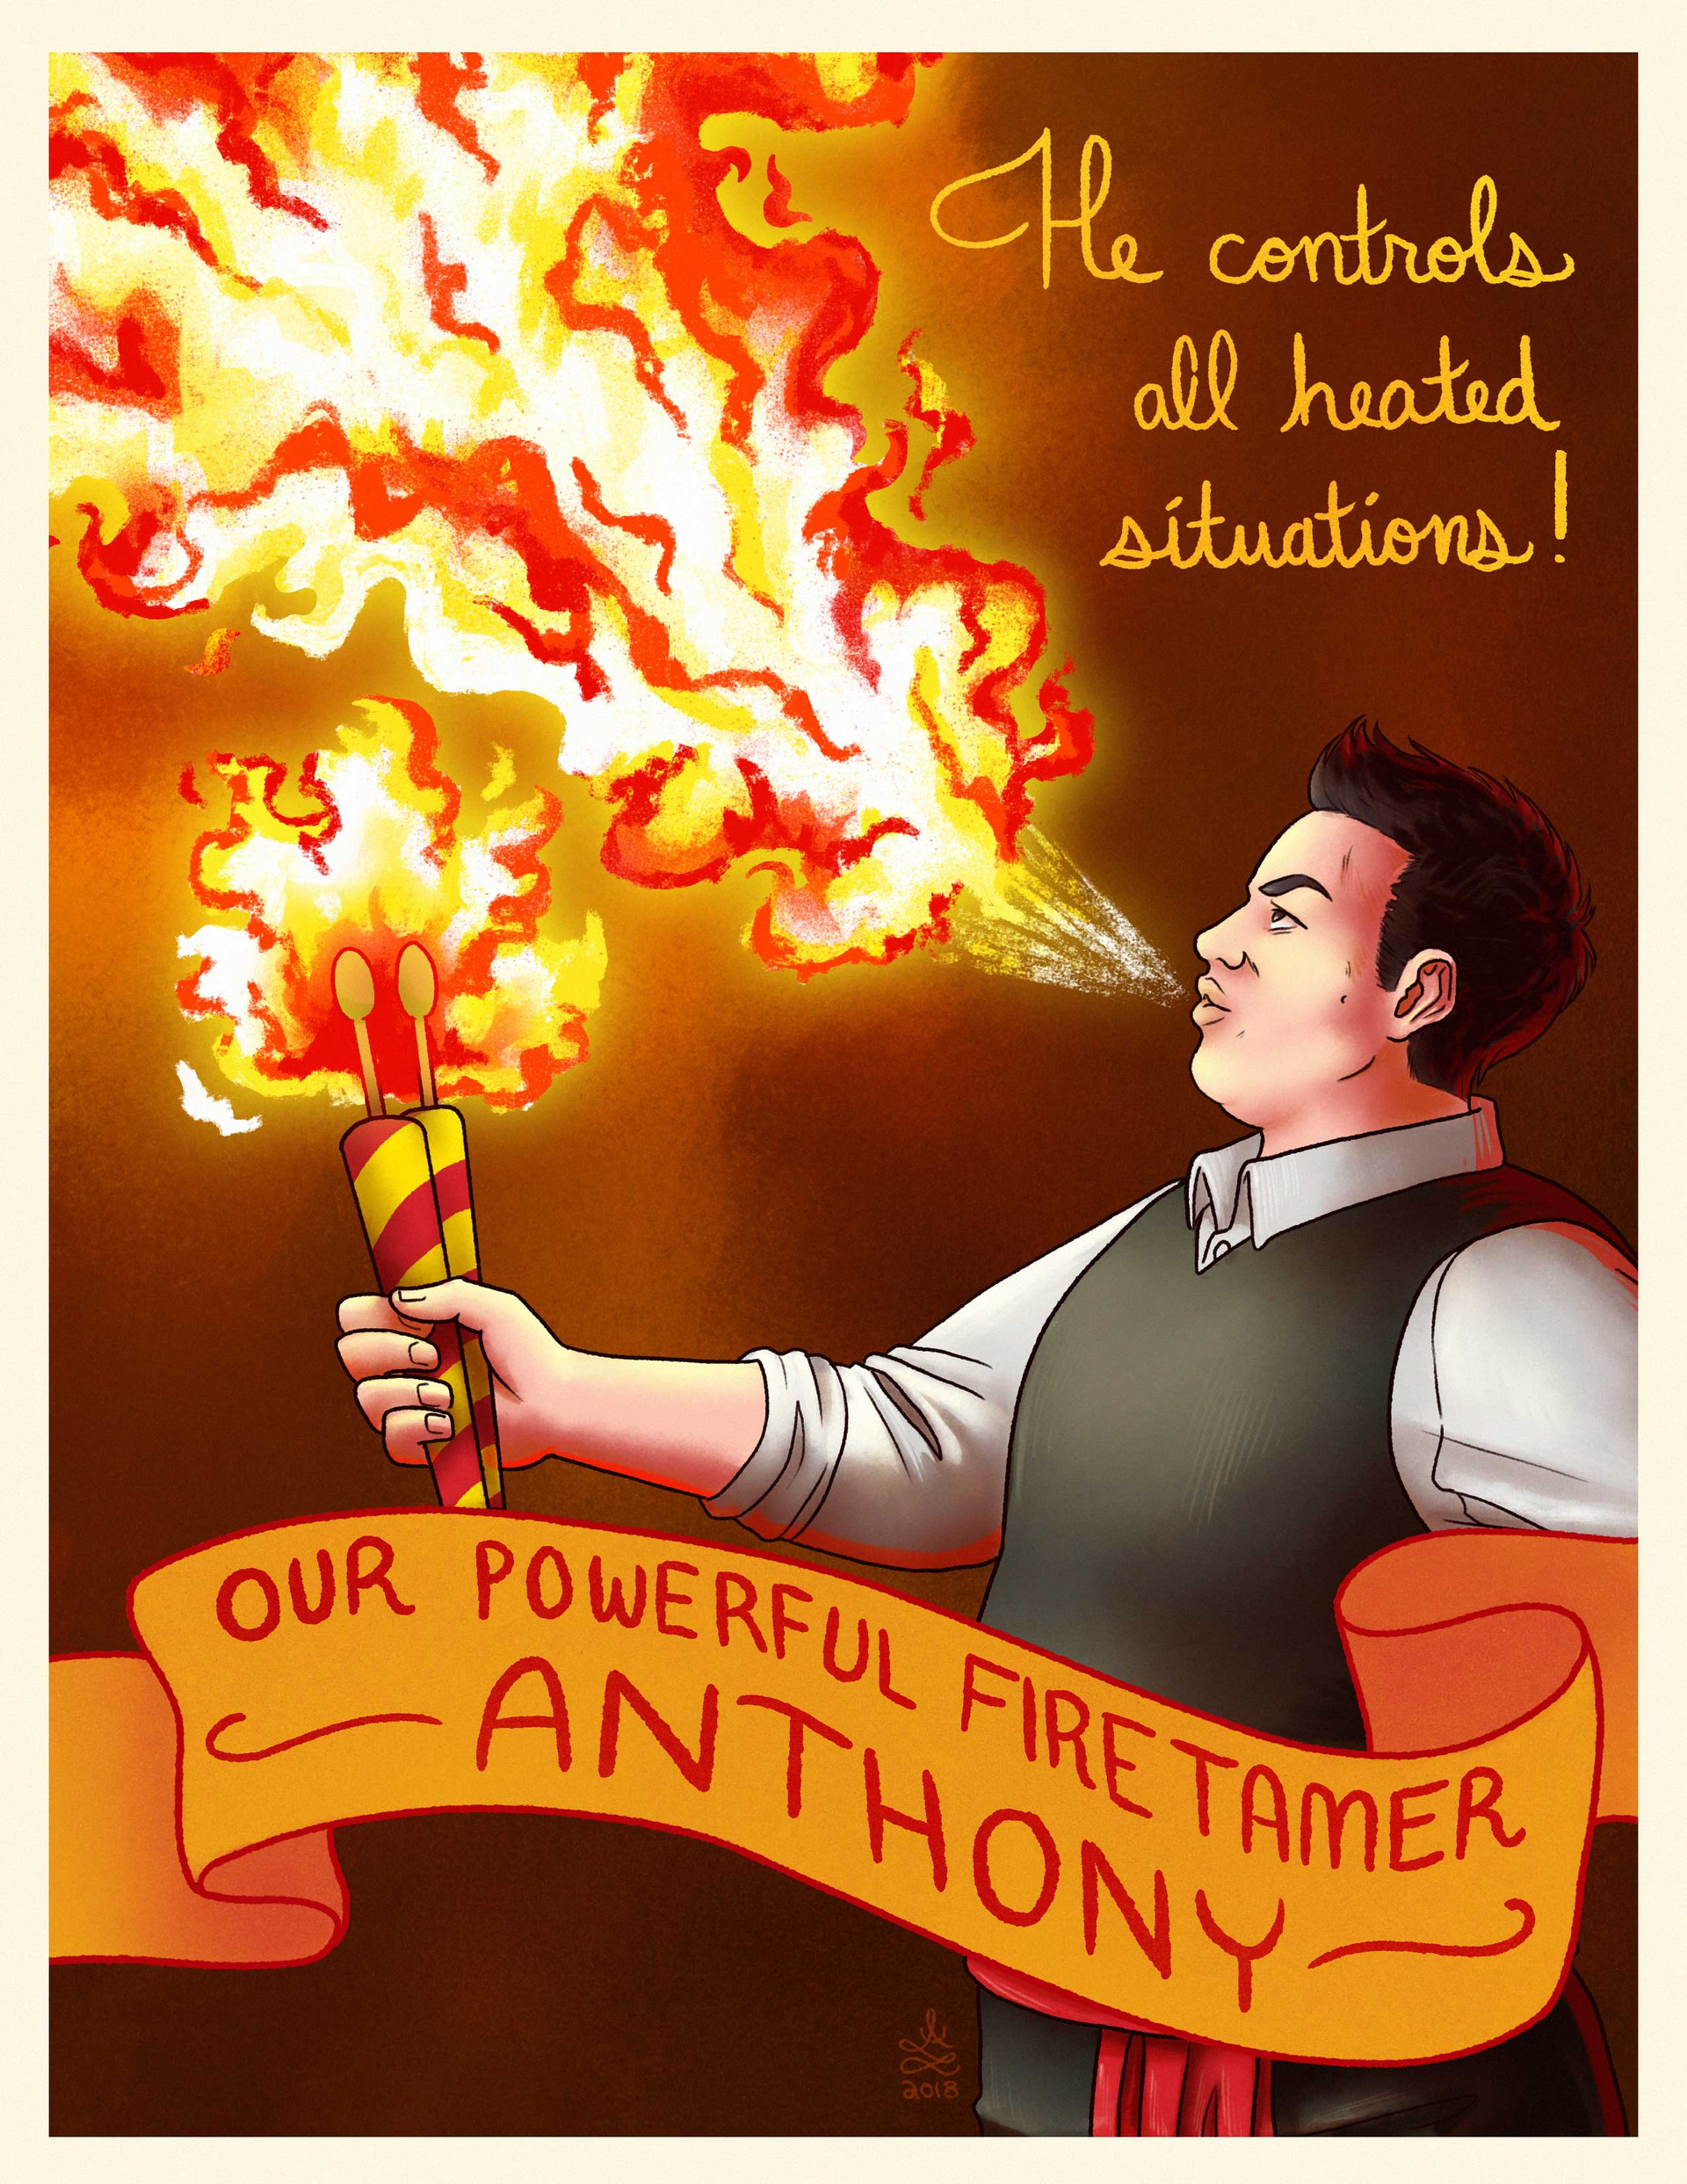 Fire Tamer Anthony